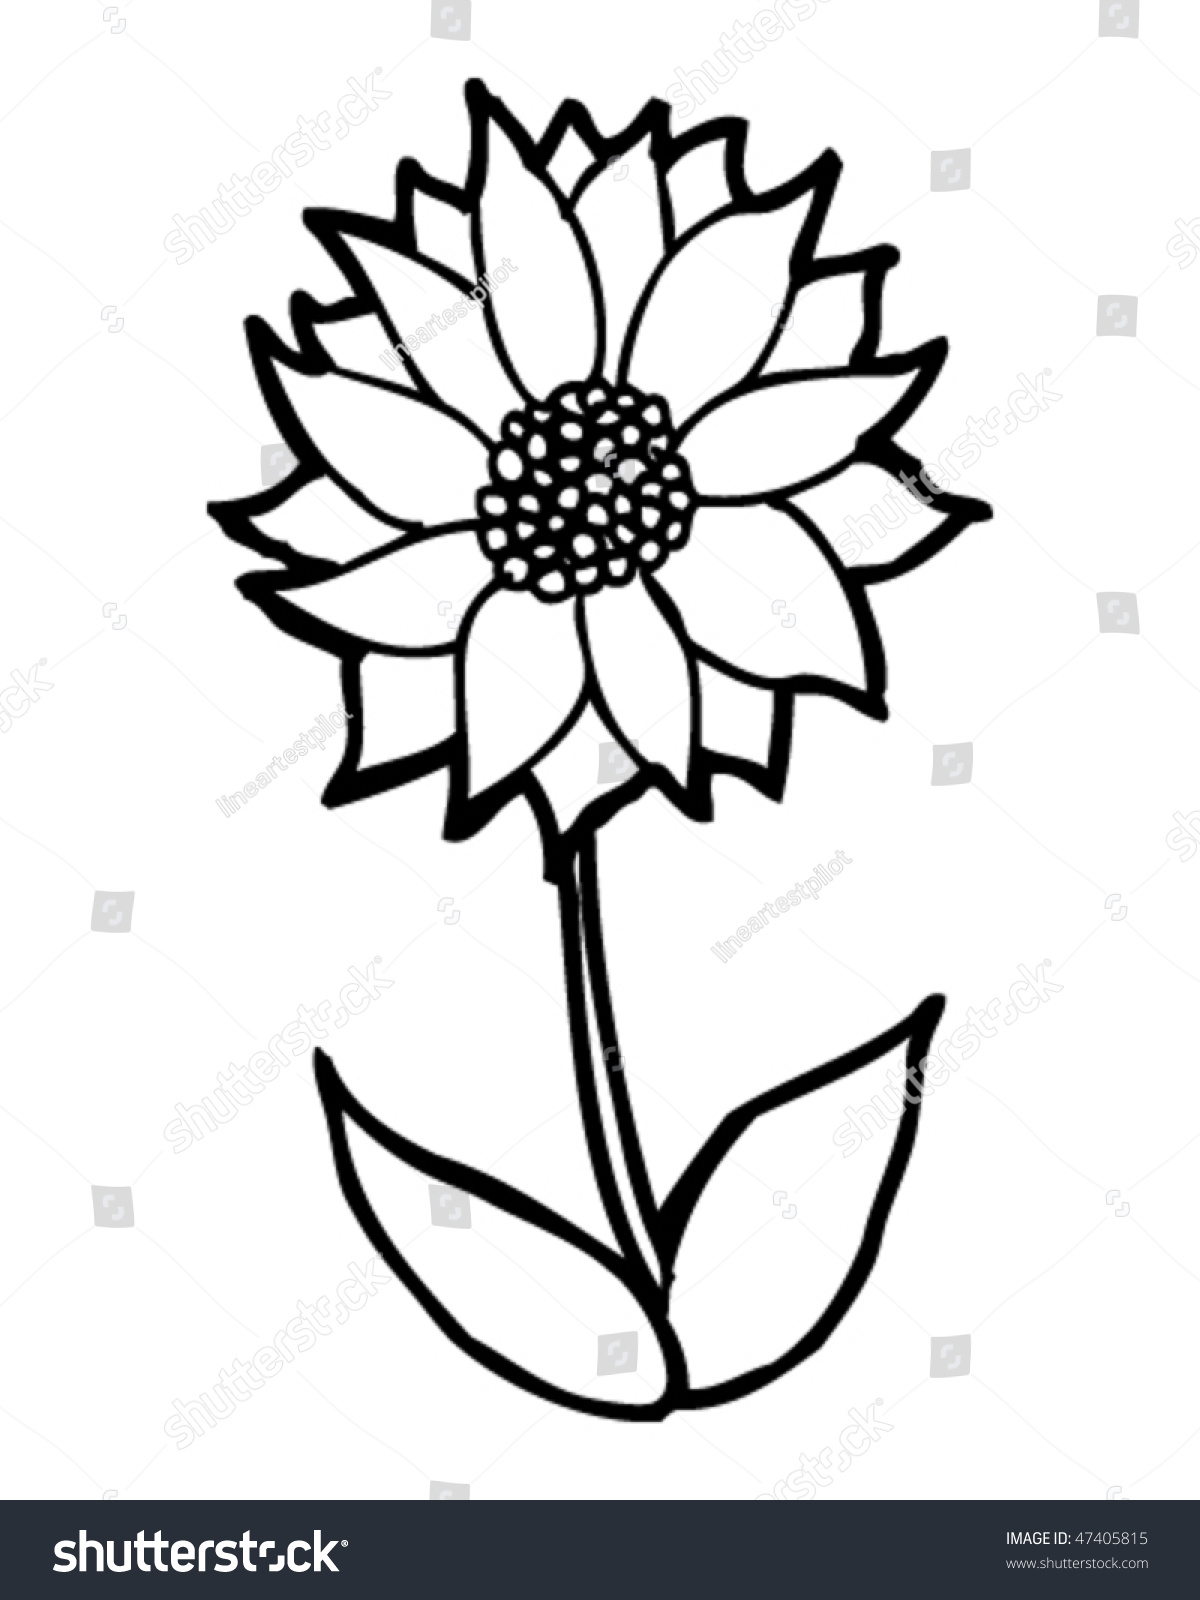 1200x1600 Cartoon Drawing Flowers Cartoon Drawing Flower Stock Vector